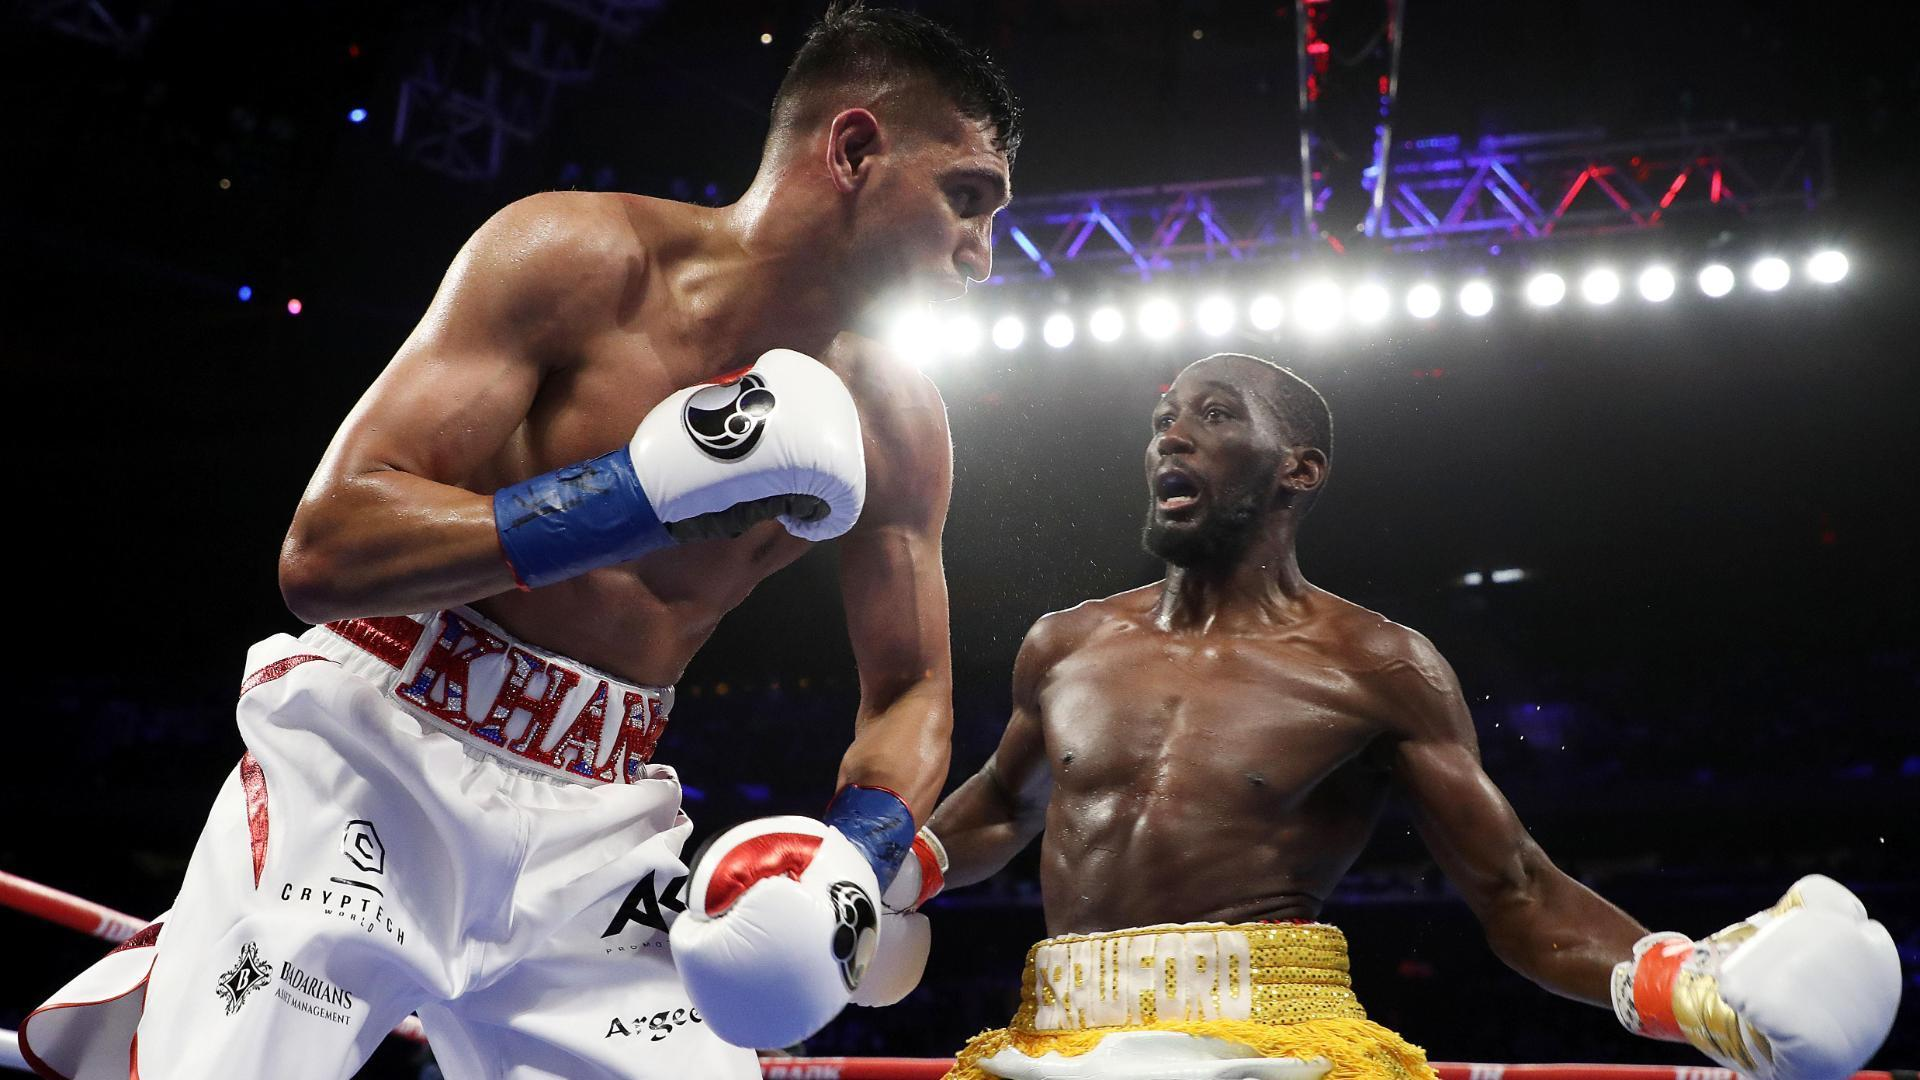 Crawford drops Khan in first round